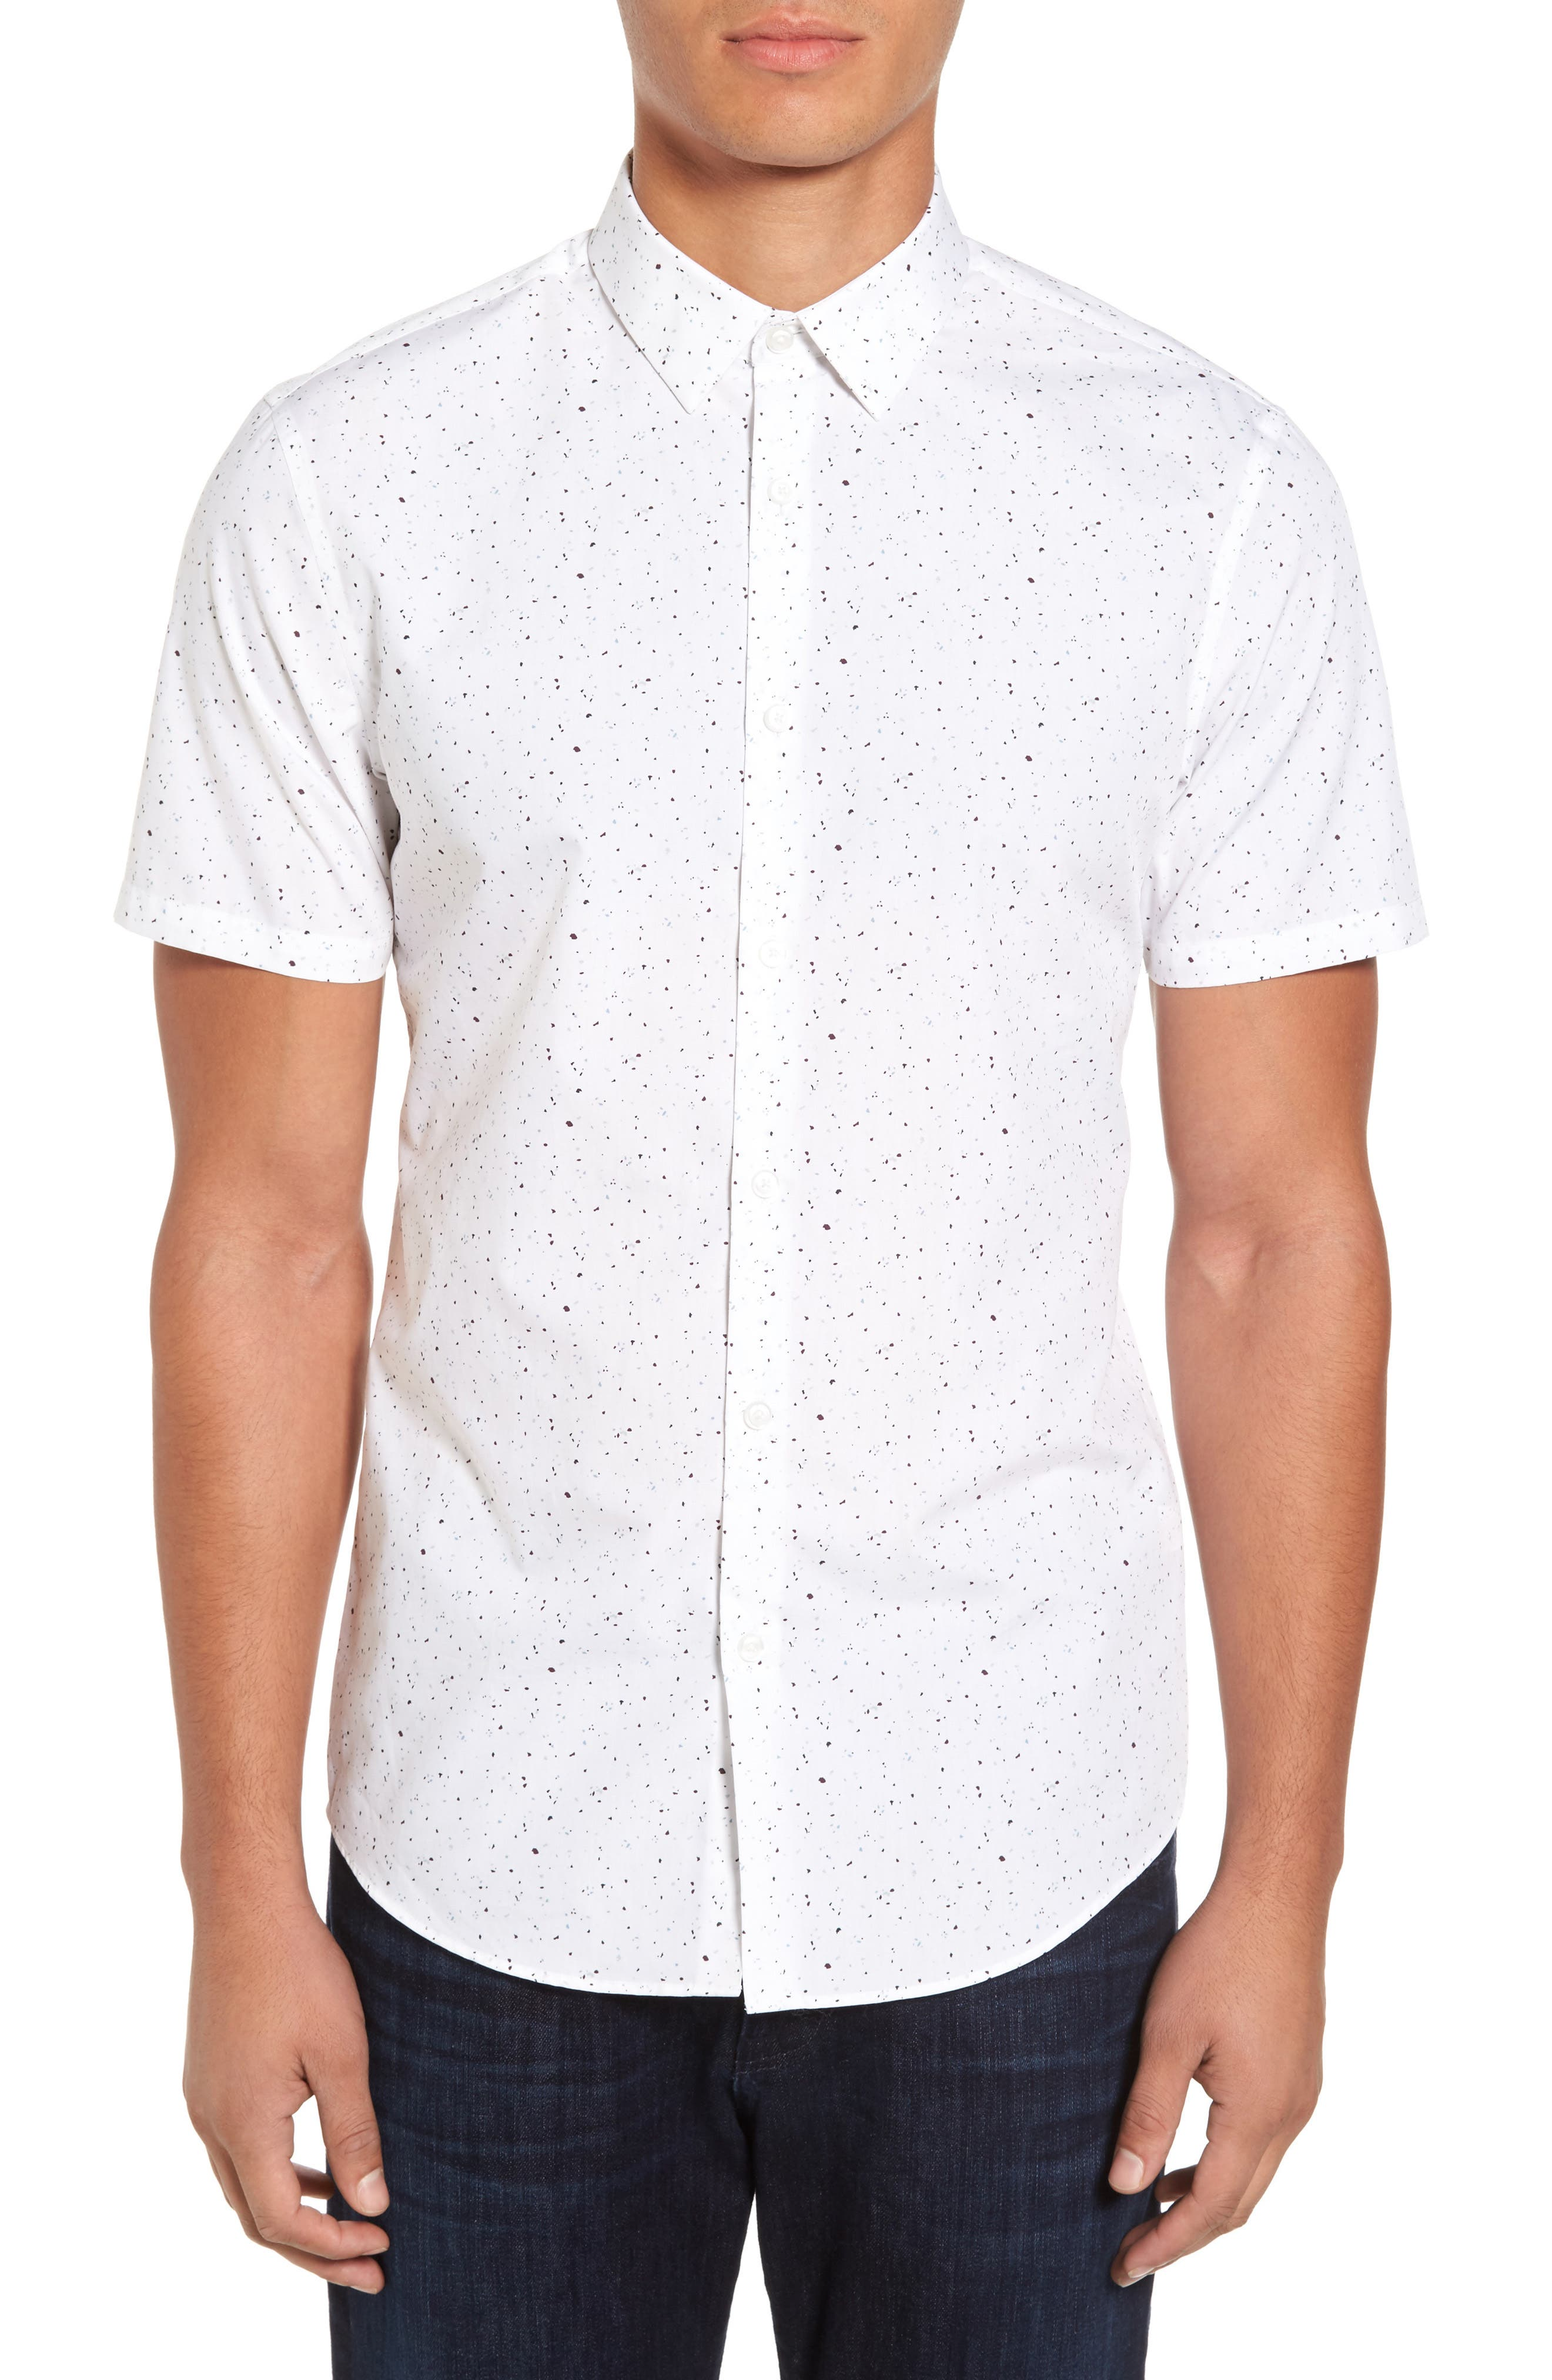 Calibrate Speckle Print Sport Shirt